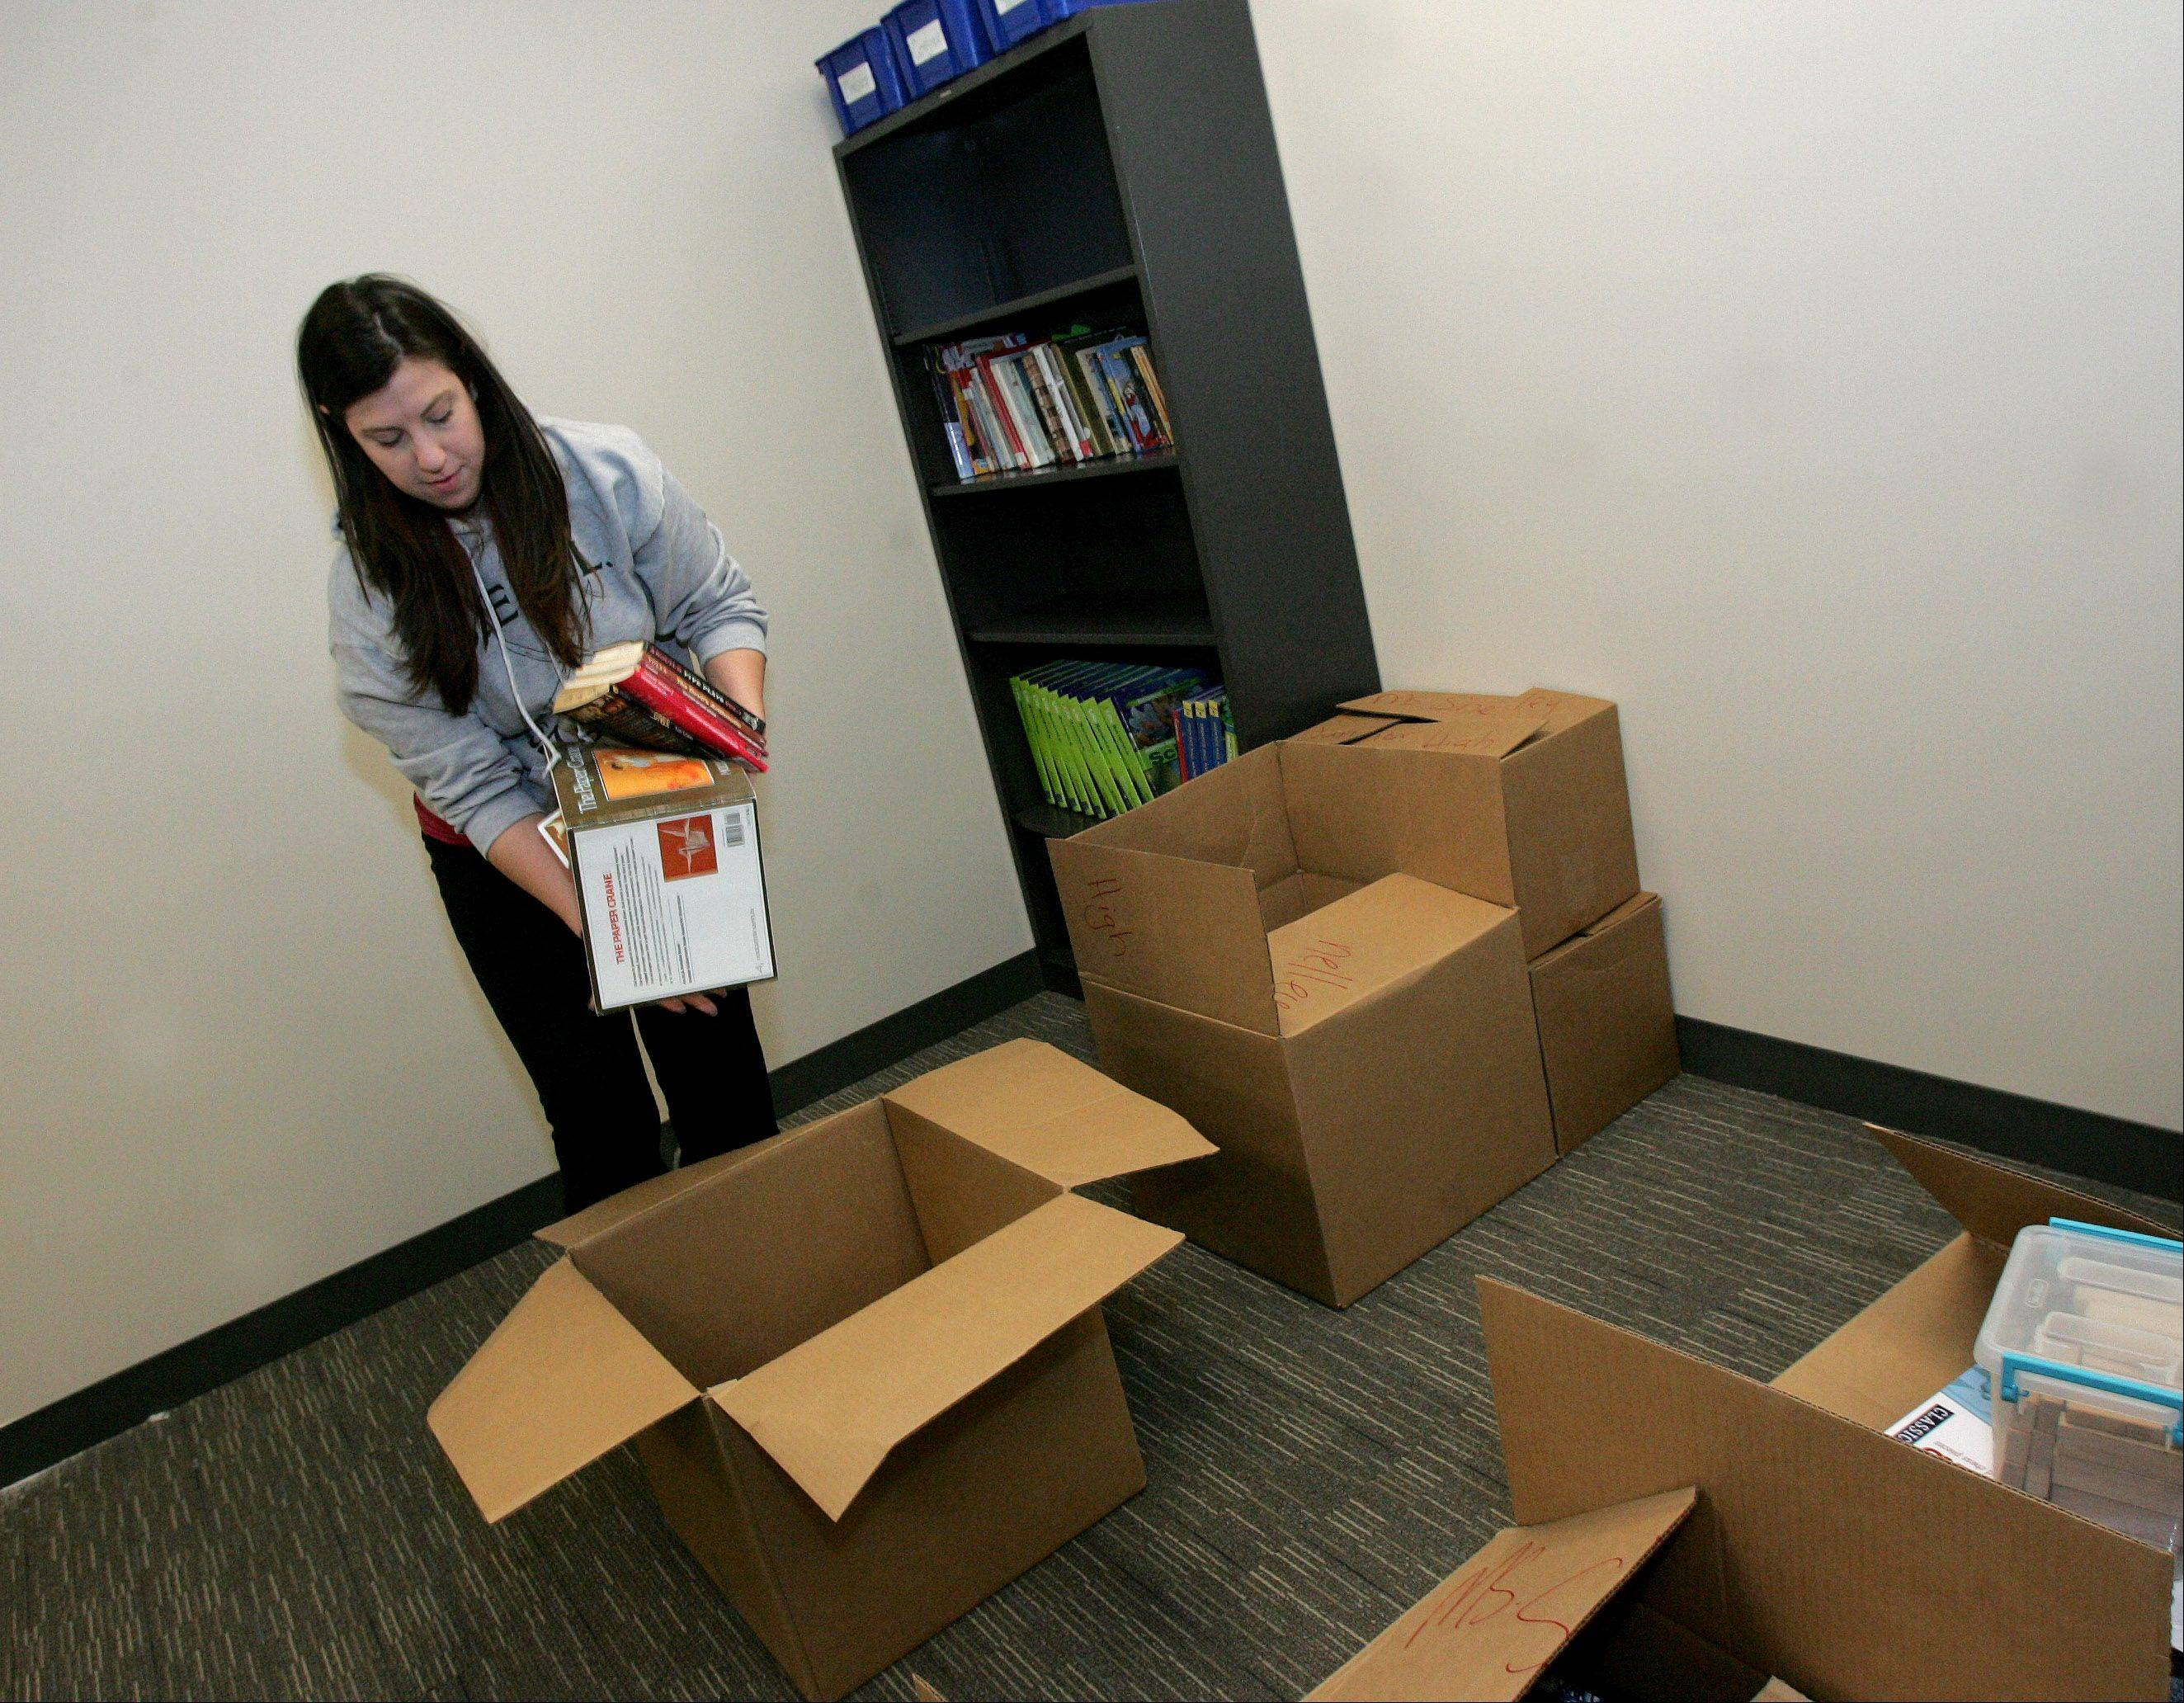 Teacher Shelley Smith unpacks books as she gets her junior high classroom ready at the new location of the School of Expressive Arts and Learning in Lombard. Classes at the $5.5 million facility begin Monday.